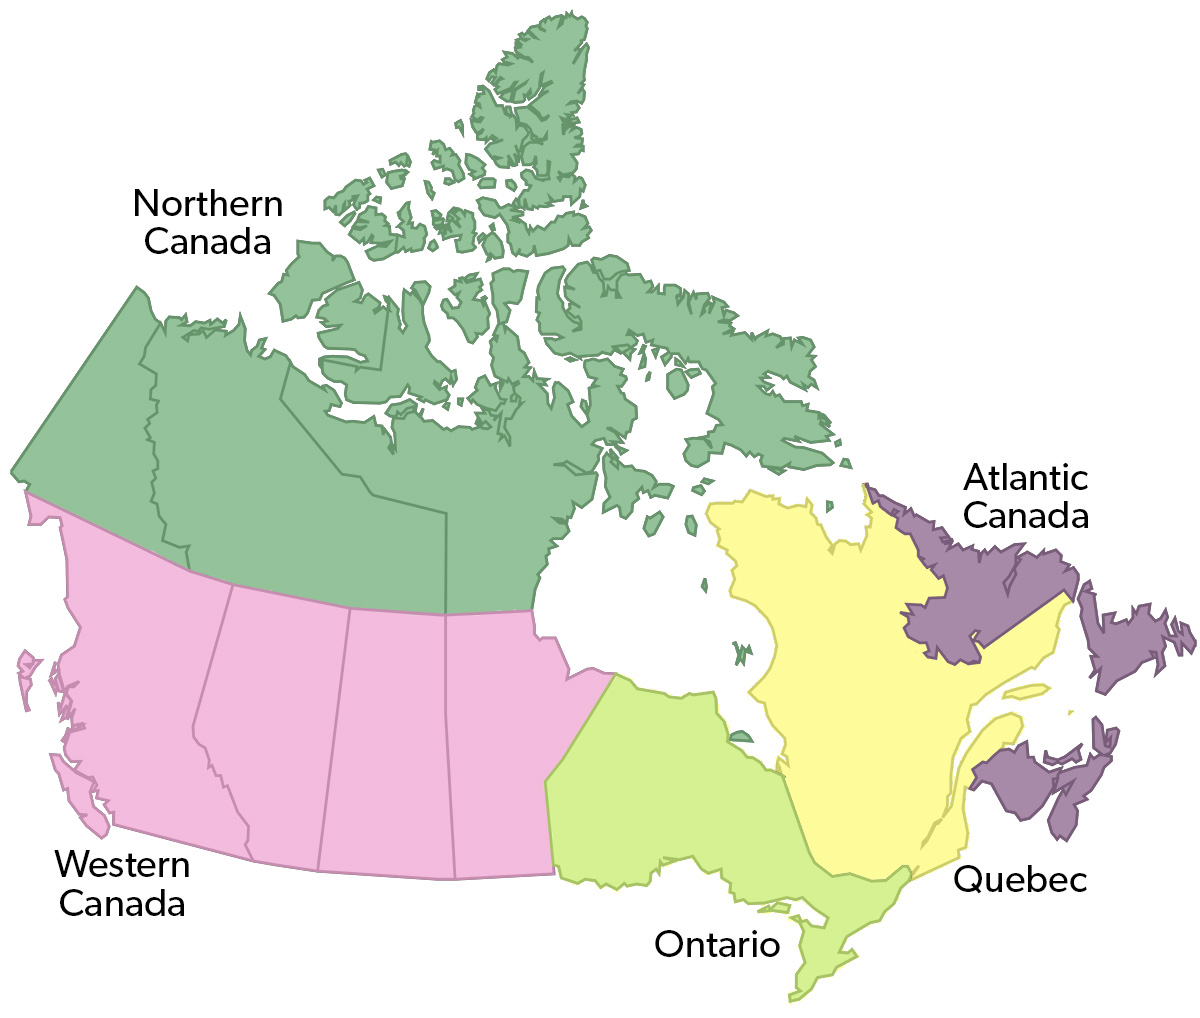 Ontario, Quebec, and Western Canada study update (February 2019): - Happy February! The Canadian K9 Lifetime Study has reopened for veterinary clinics to begin new puppy enrollment in Ontario and welcomes veterinary clinic enrollment of puppies from Quebec and western Canada (Manitoba, Saskatchewan, Alberta & British Columbia). It is good to be national!